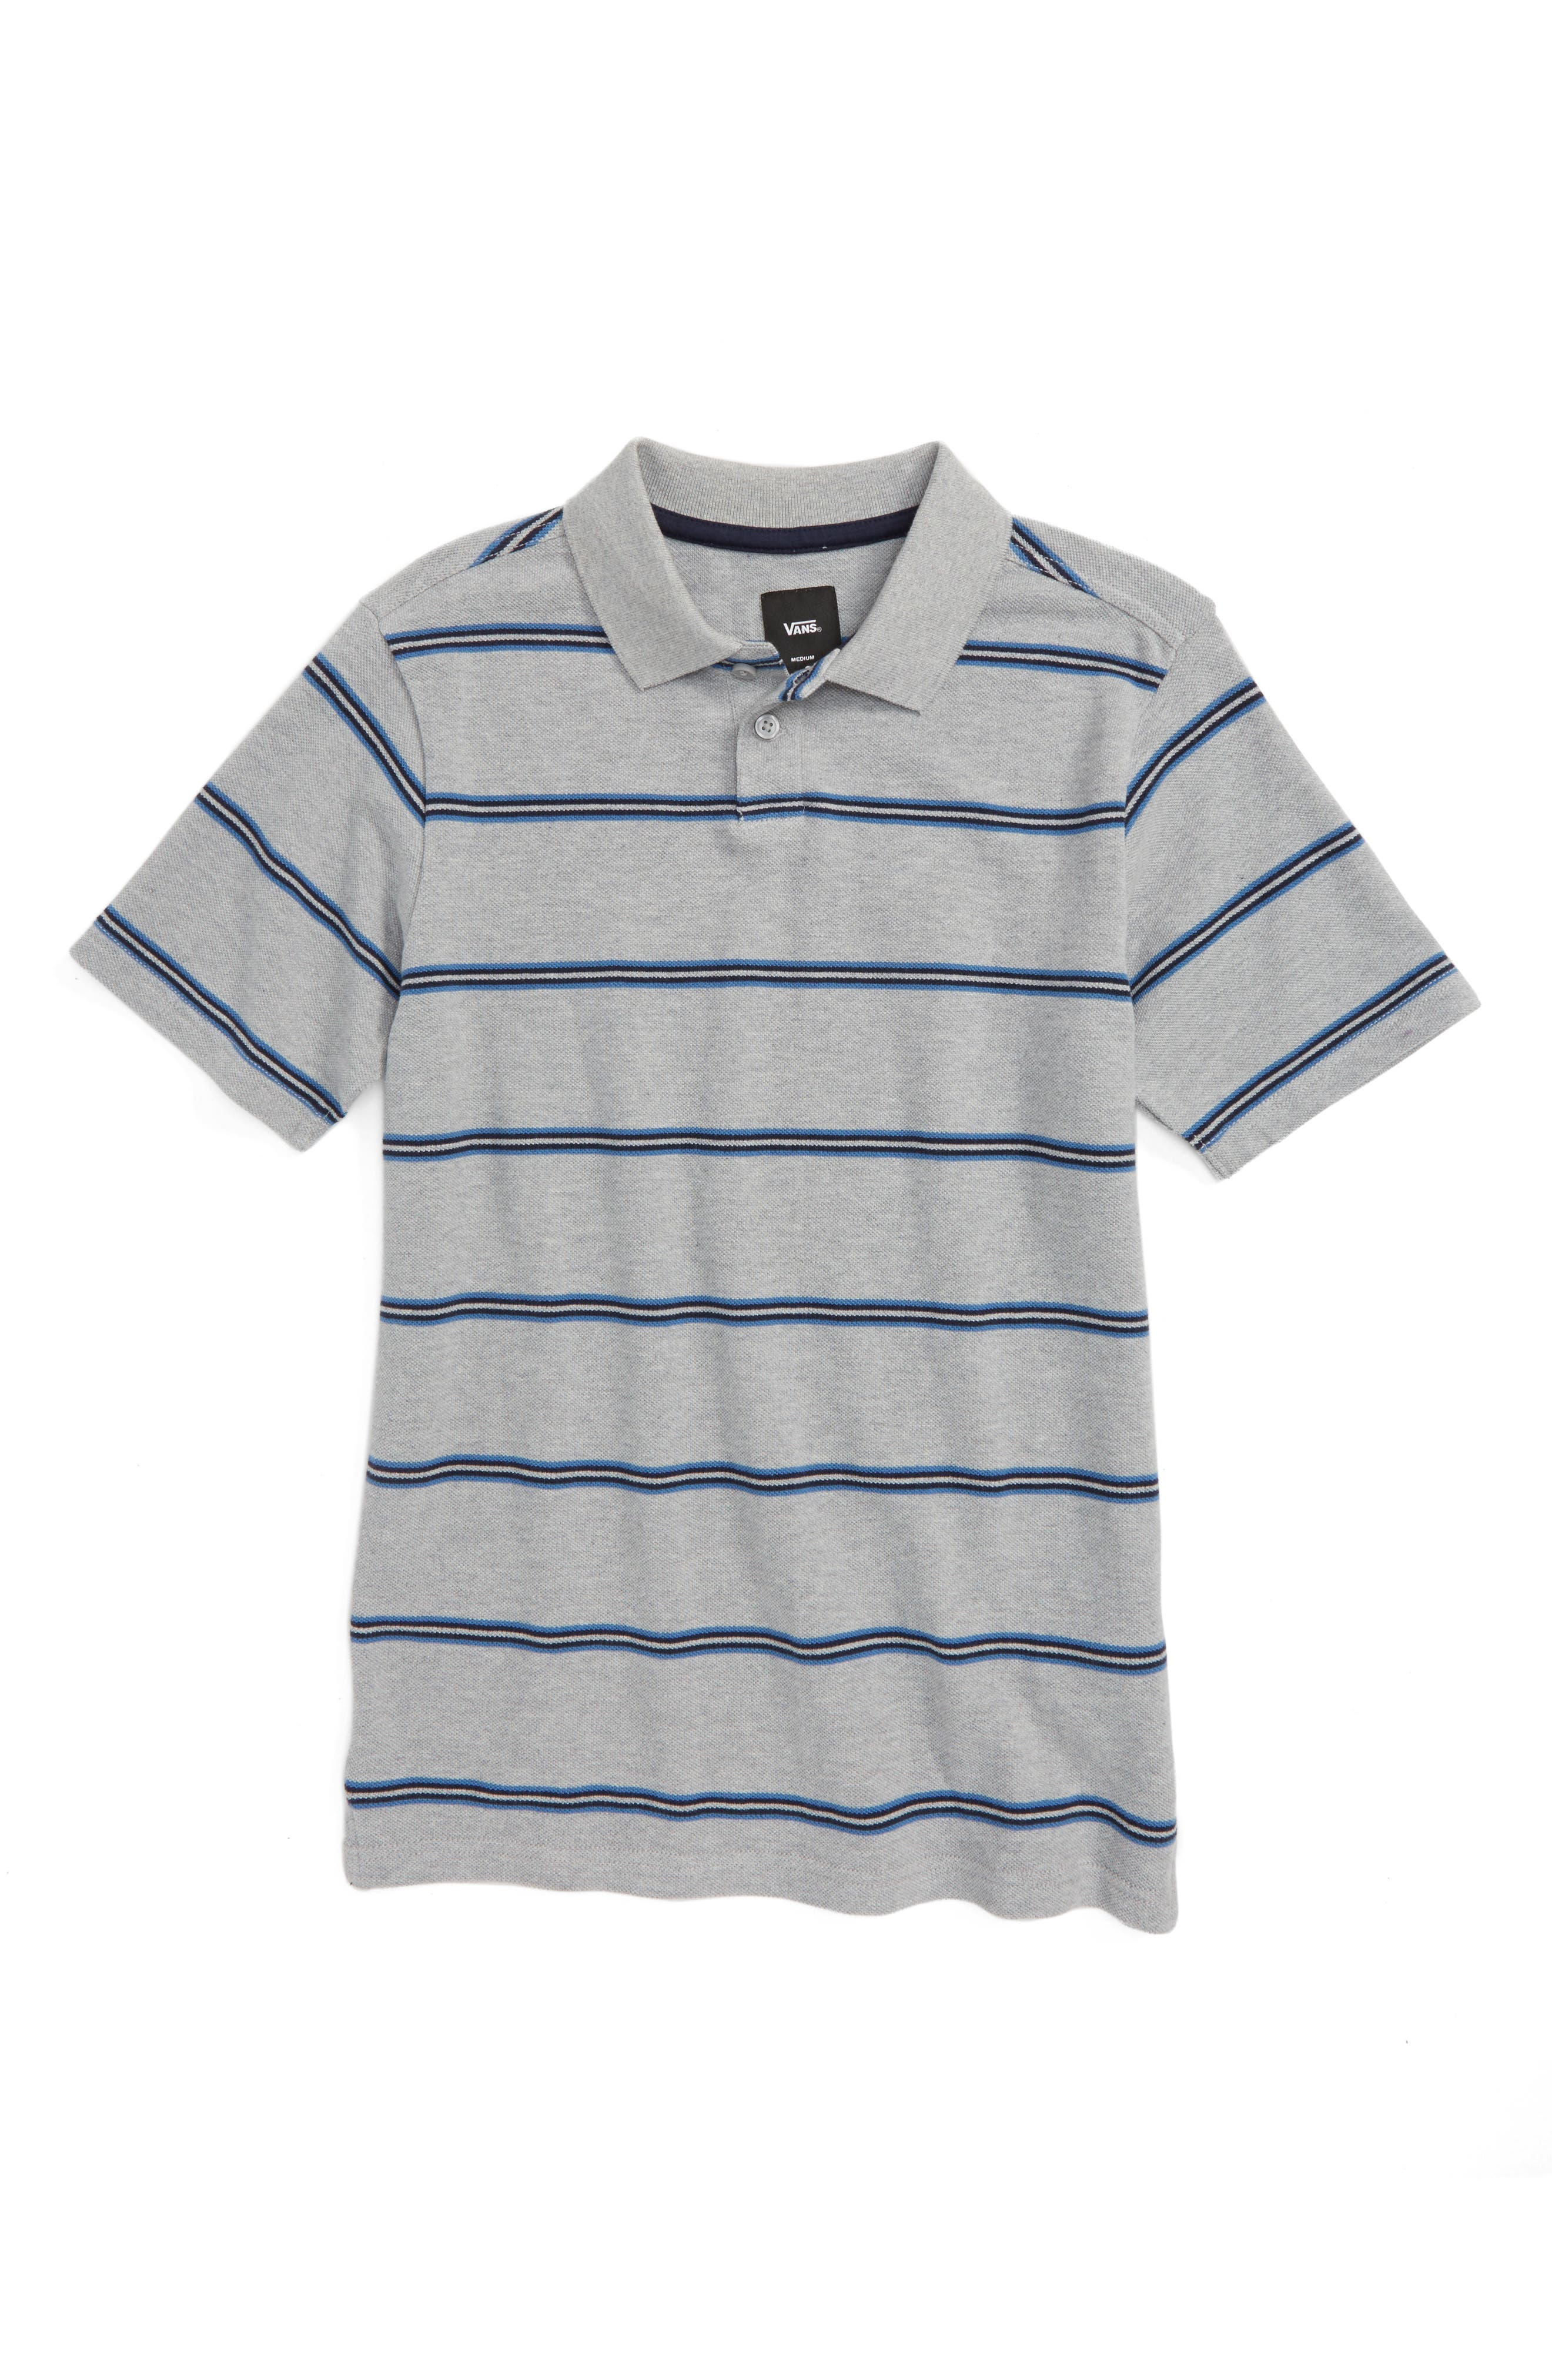 Gifford Polo,                         Main,                         color, Cement Heather